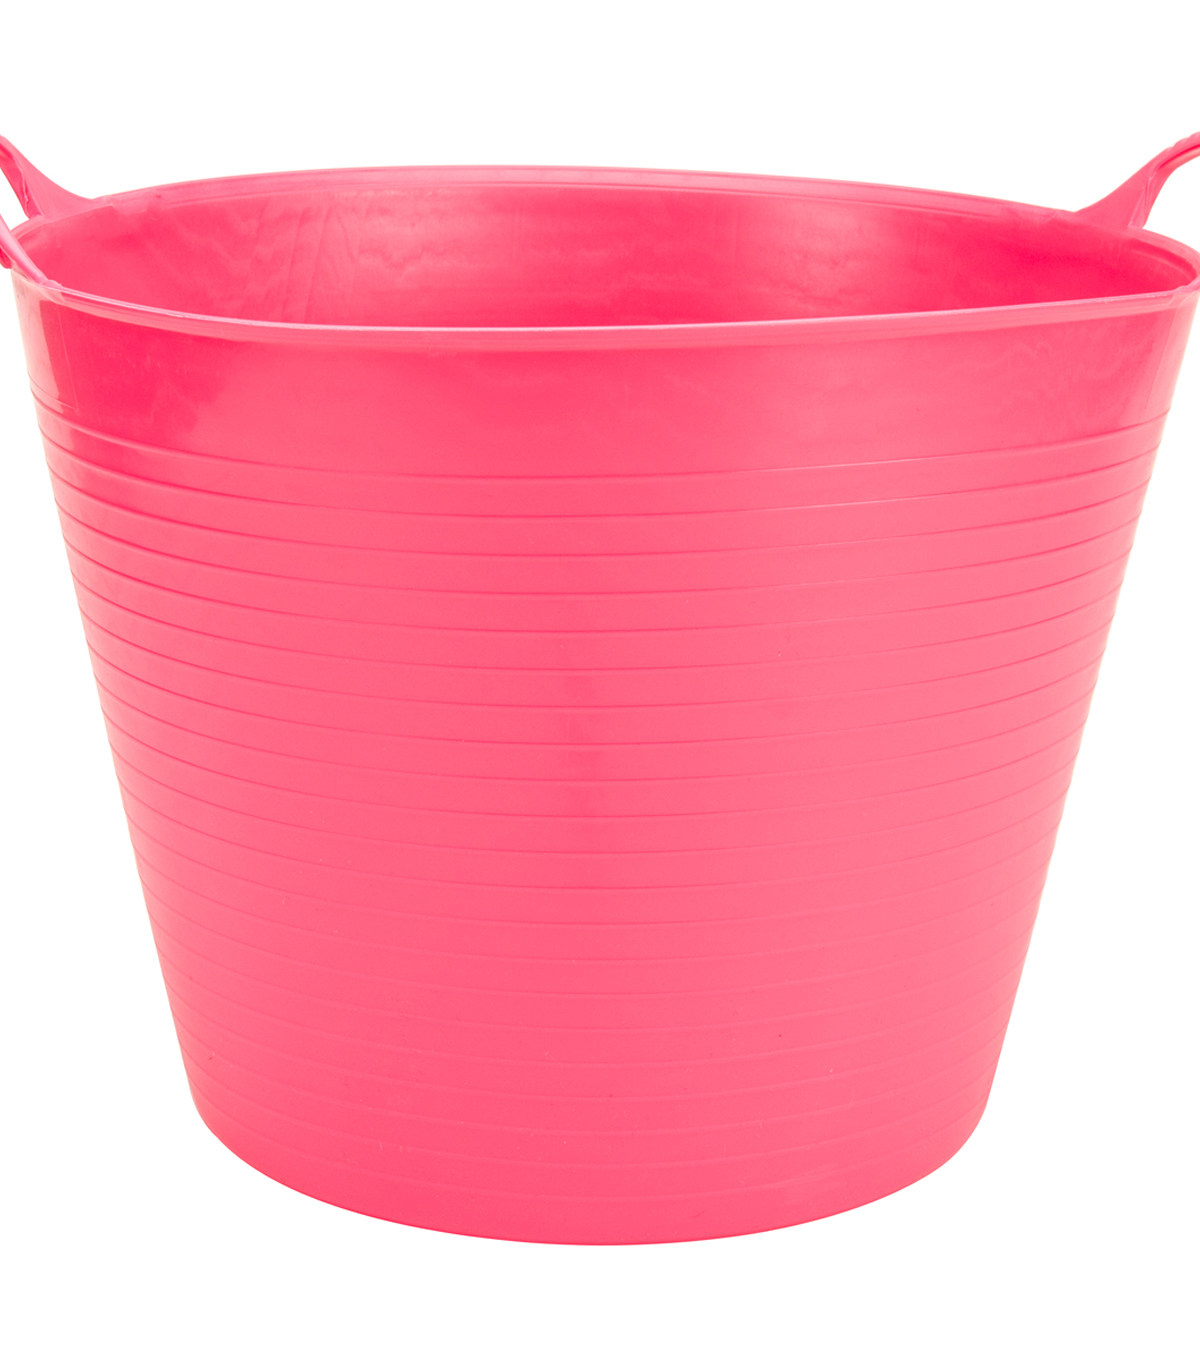 Soak Carrie Basin 24 Liters-Pink